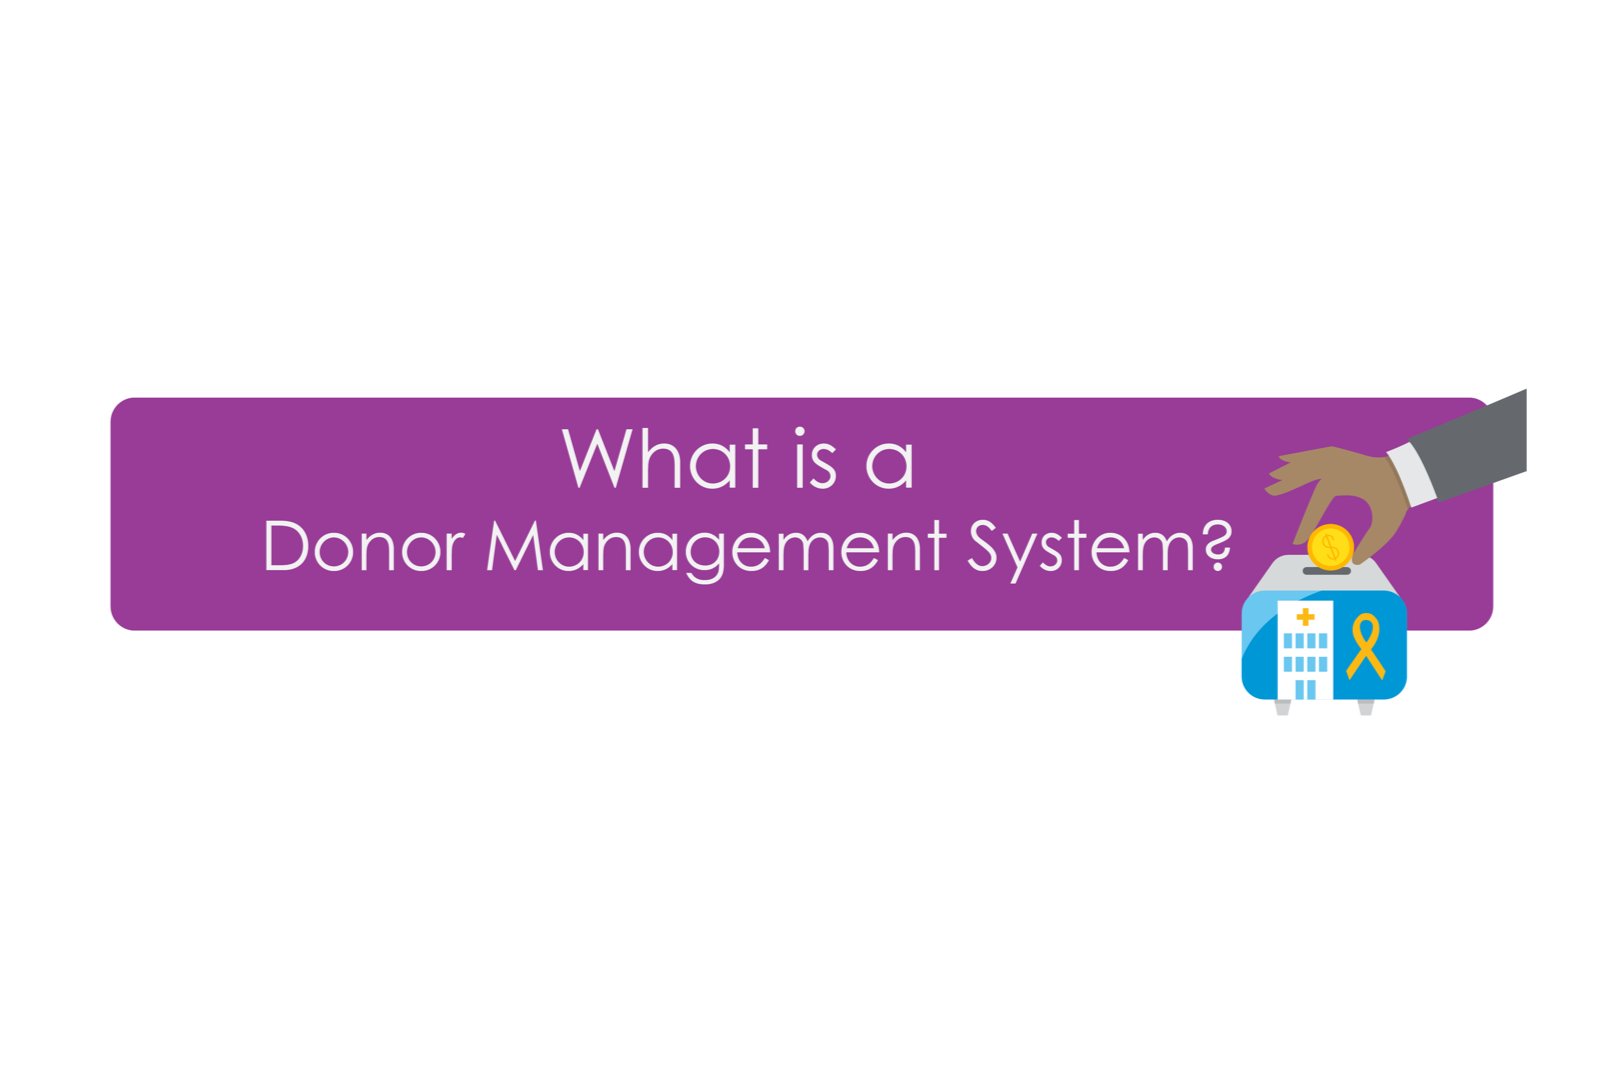 What is a donor management system